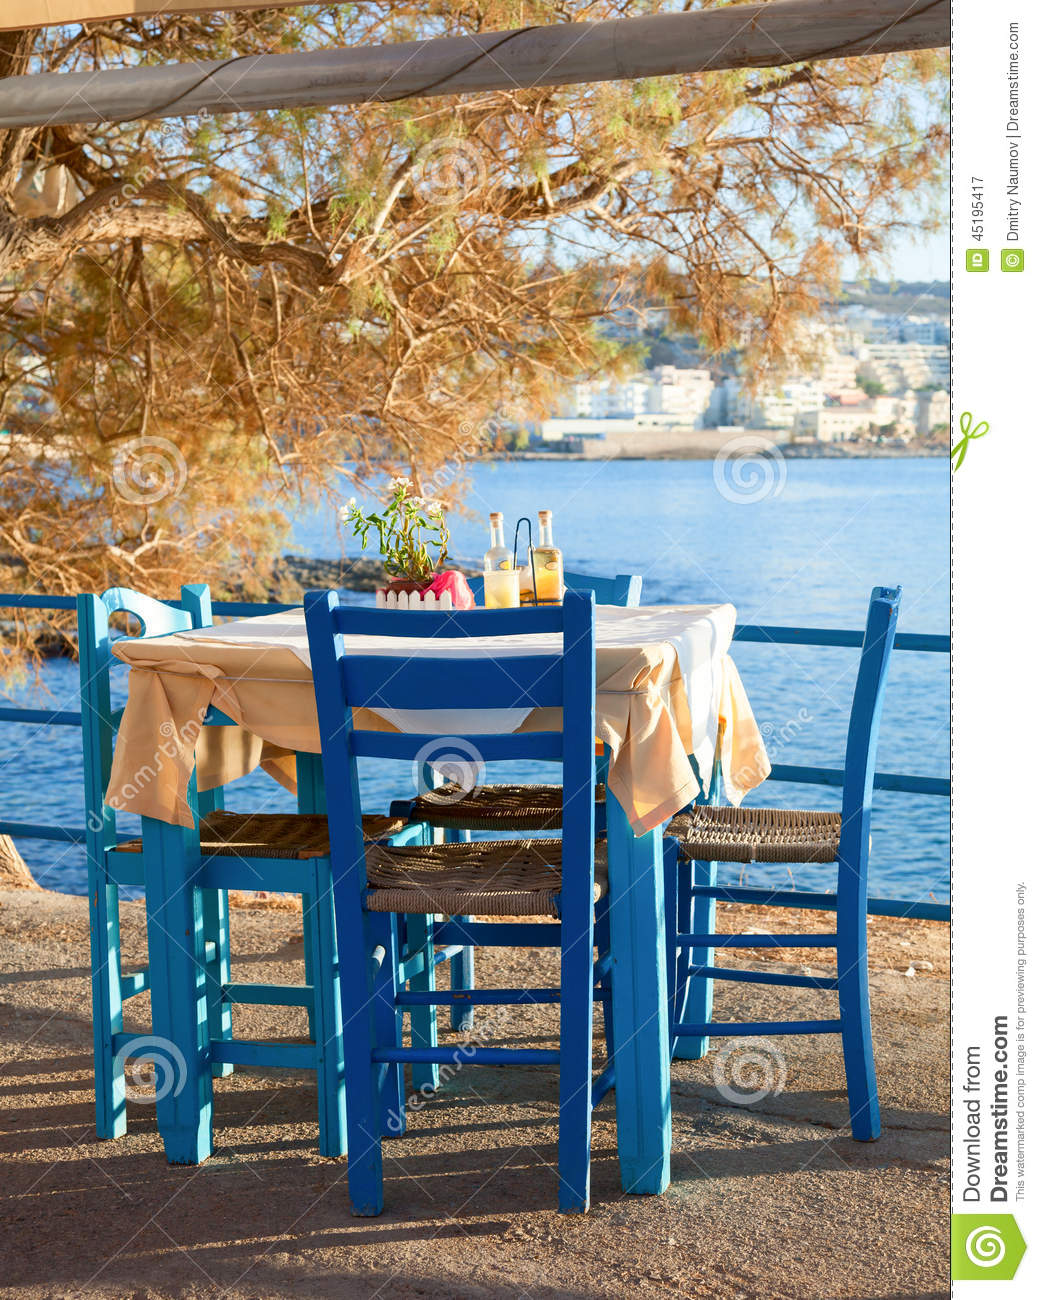 August 2014 Cpo Offers Table Jpg: Terrasse De Café De Bord De La Mer Image Stock